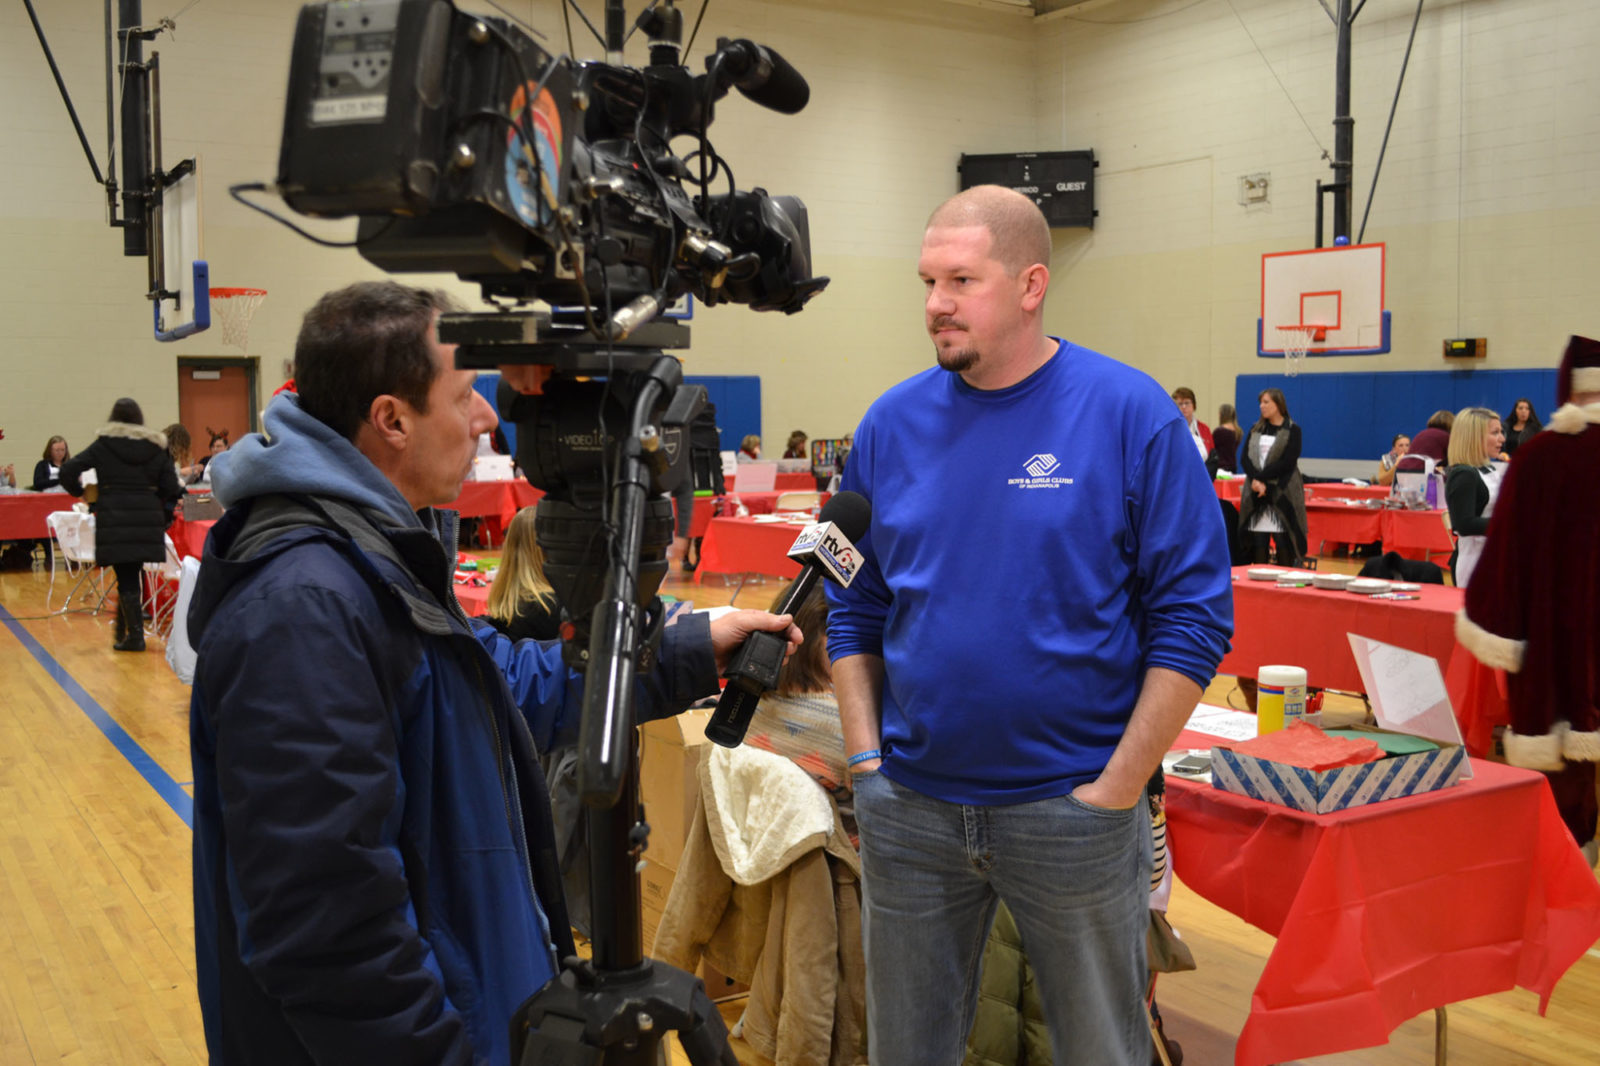 WeCare event 2018: Boys and Girls Club representative being interviewed by TV cameras